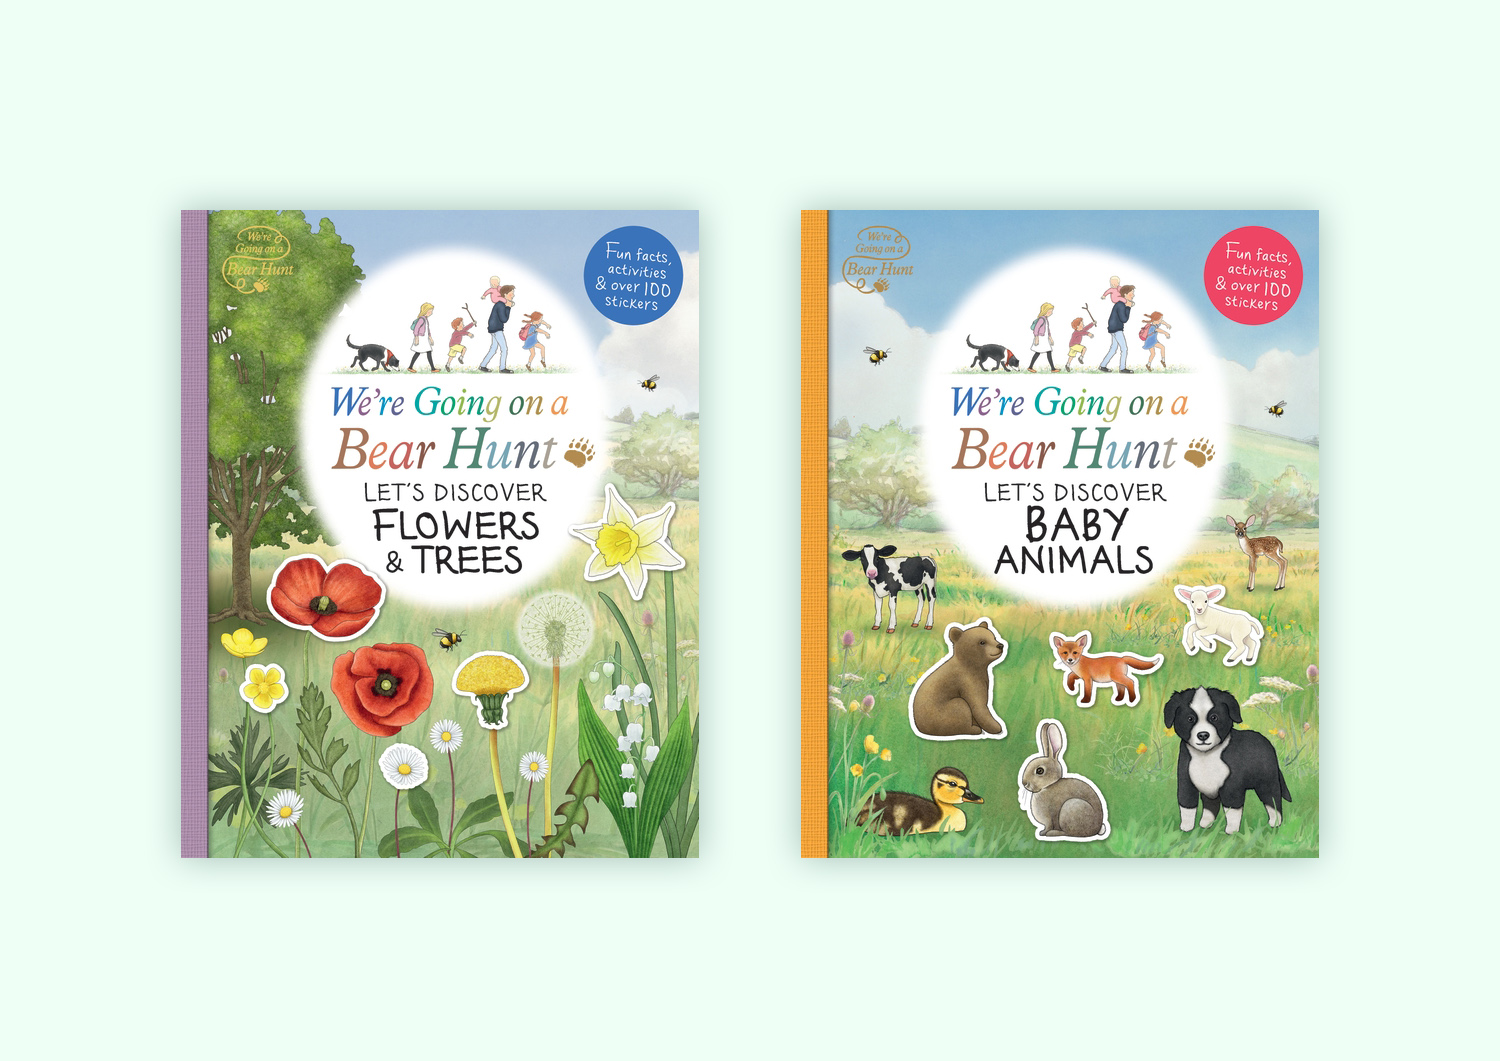 We're Going on a Bear Hunt: Let's Discover Flowers & Trees - Baby Animals